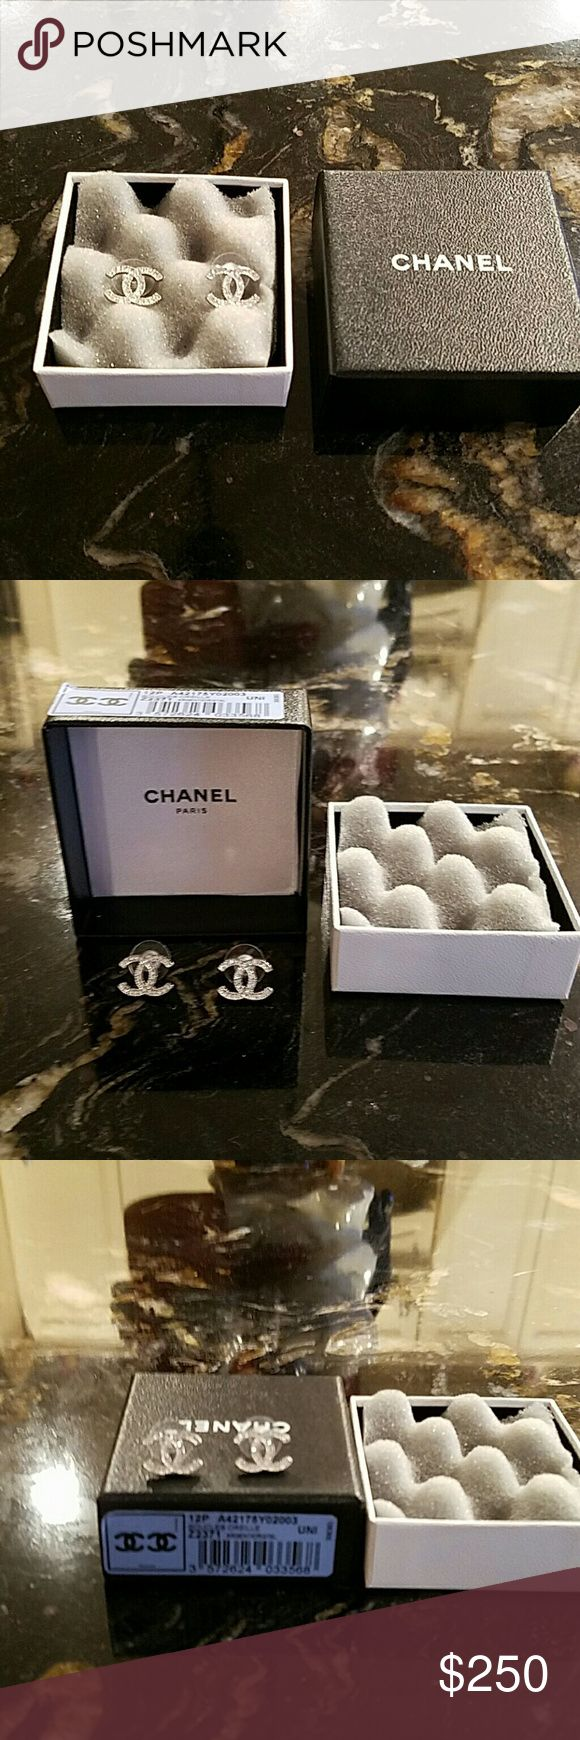 Authentic CHANEL Earrings Never worn CC Silver crystal earrings. Comes with original box with bar code. CHANEL Jewelry Earrings